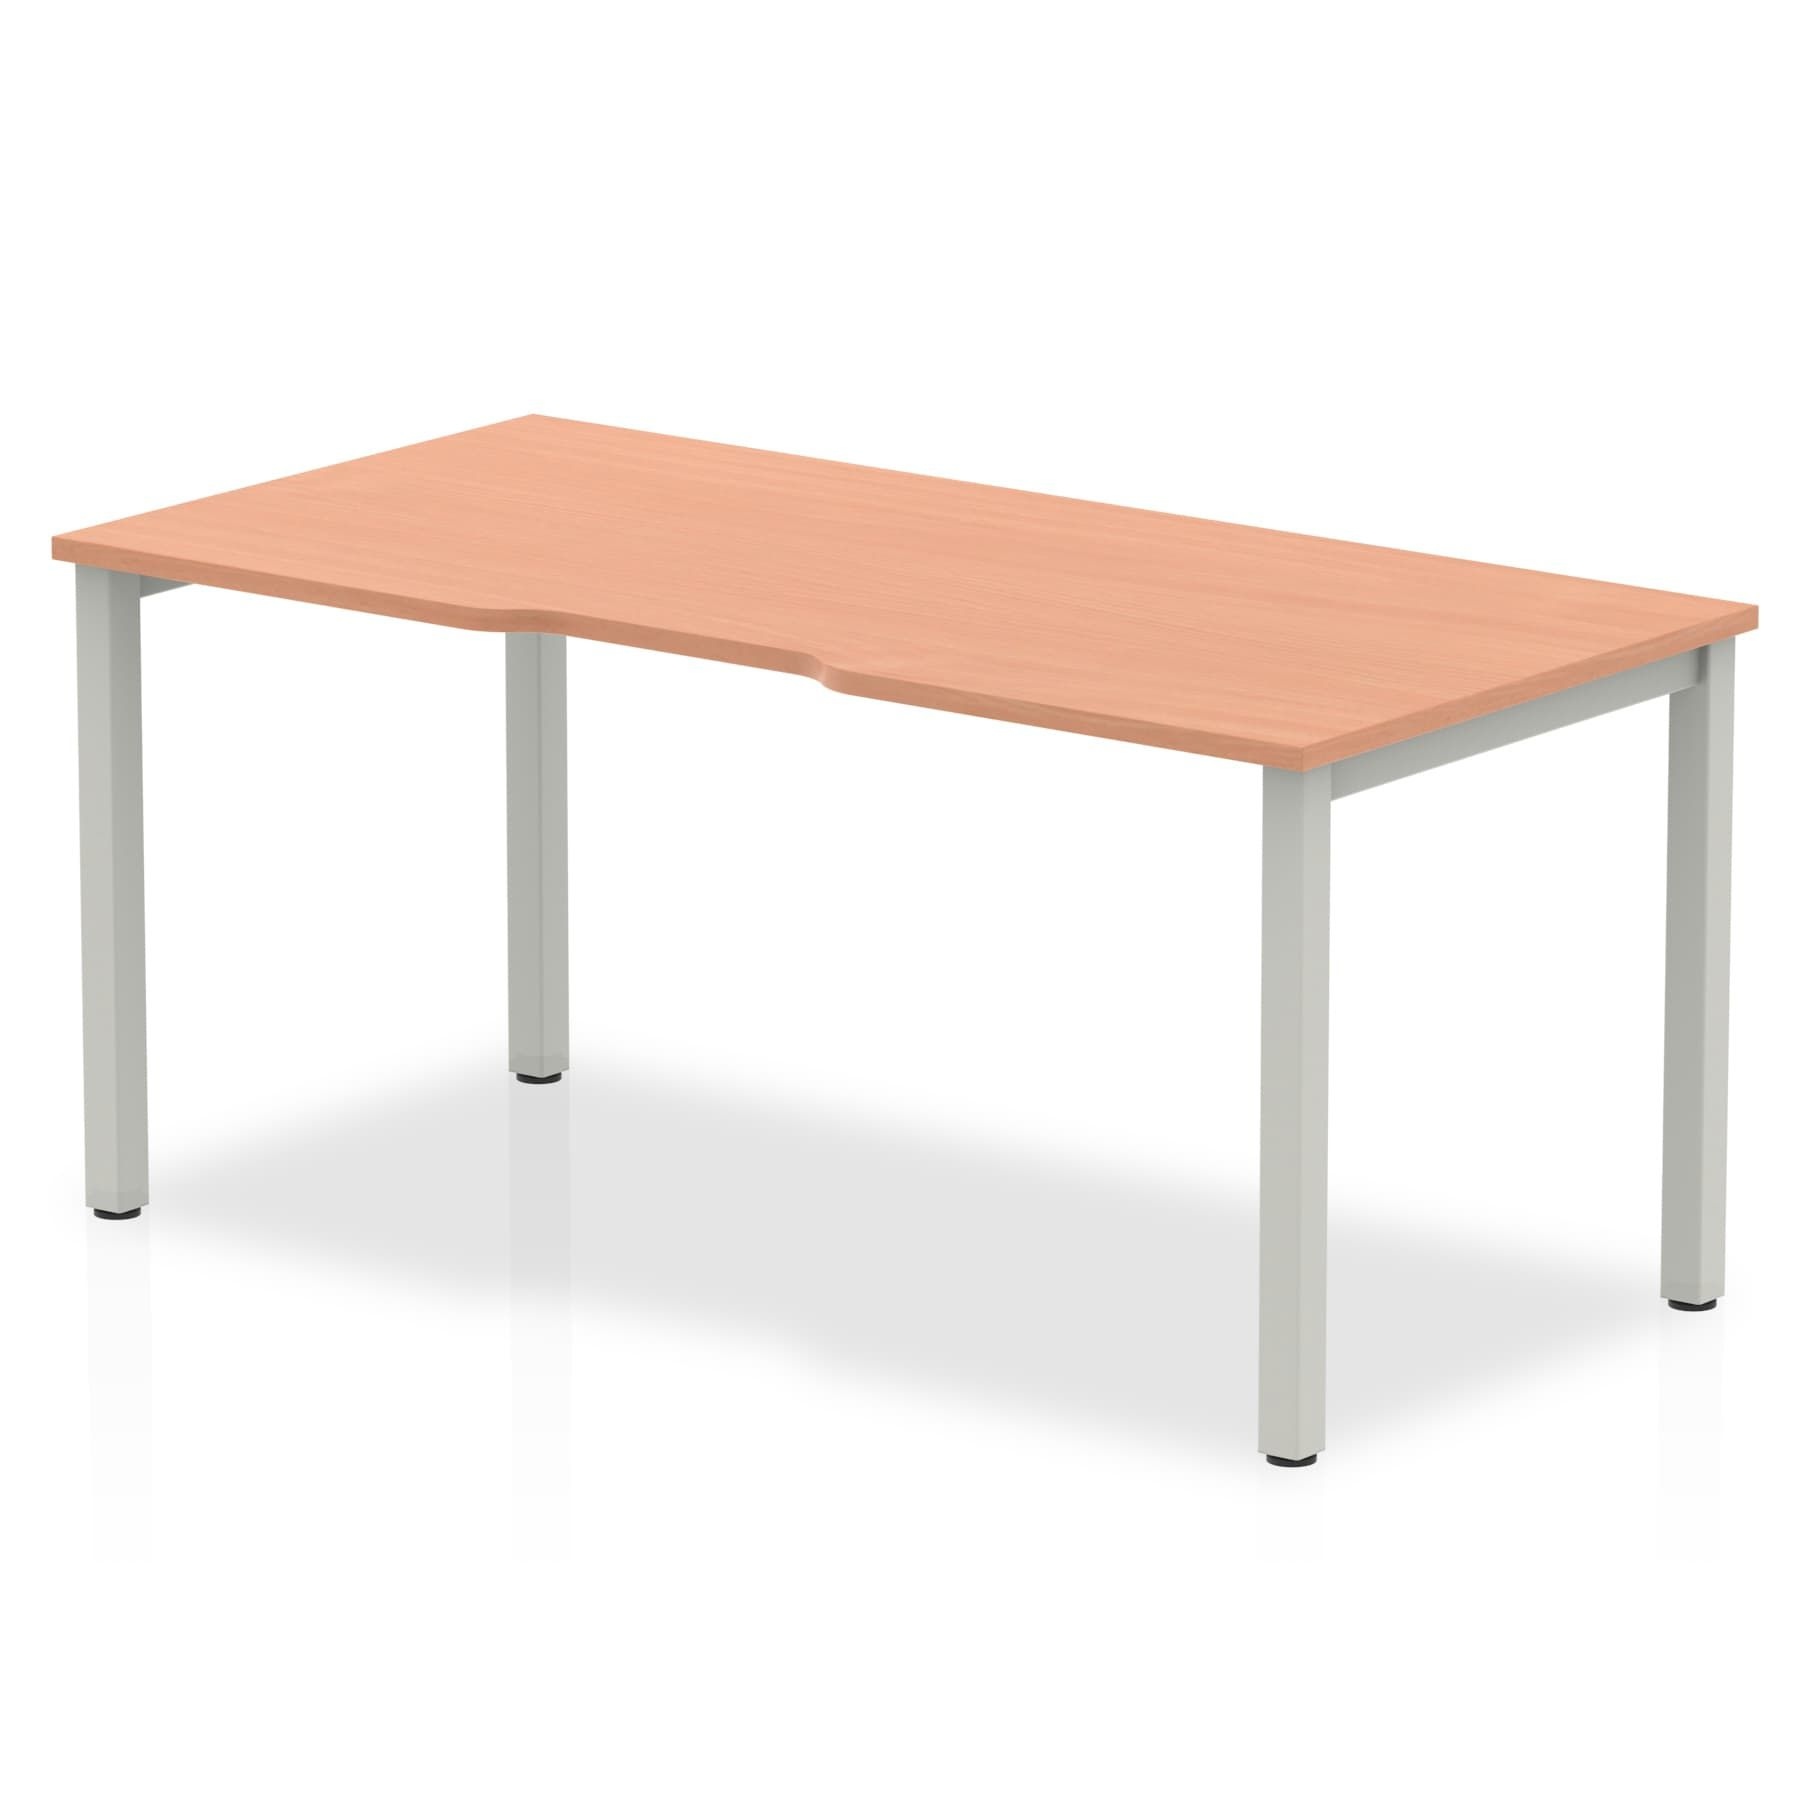 Single Silver/White Frame Bench Desk 1600